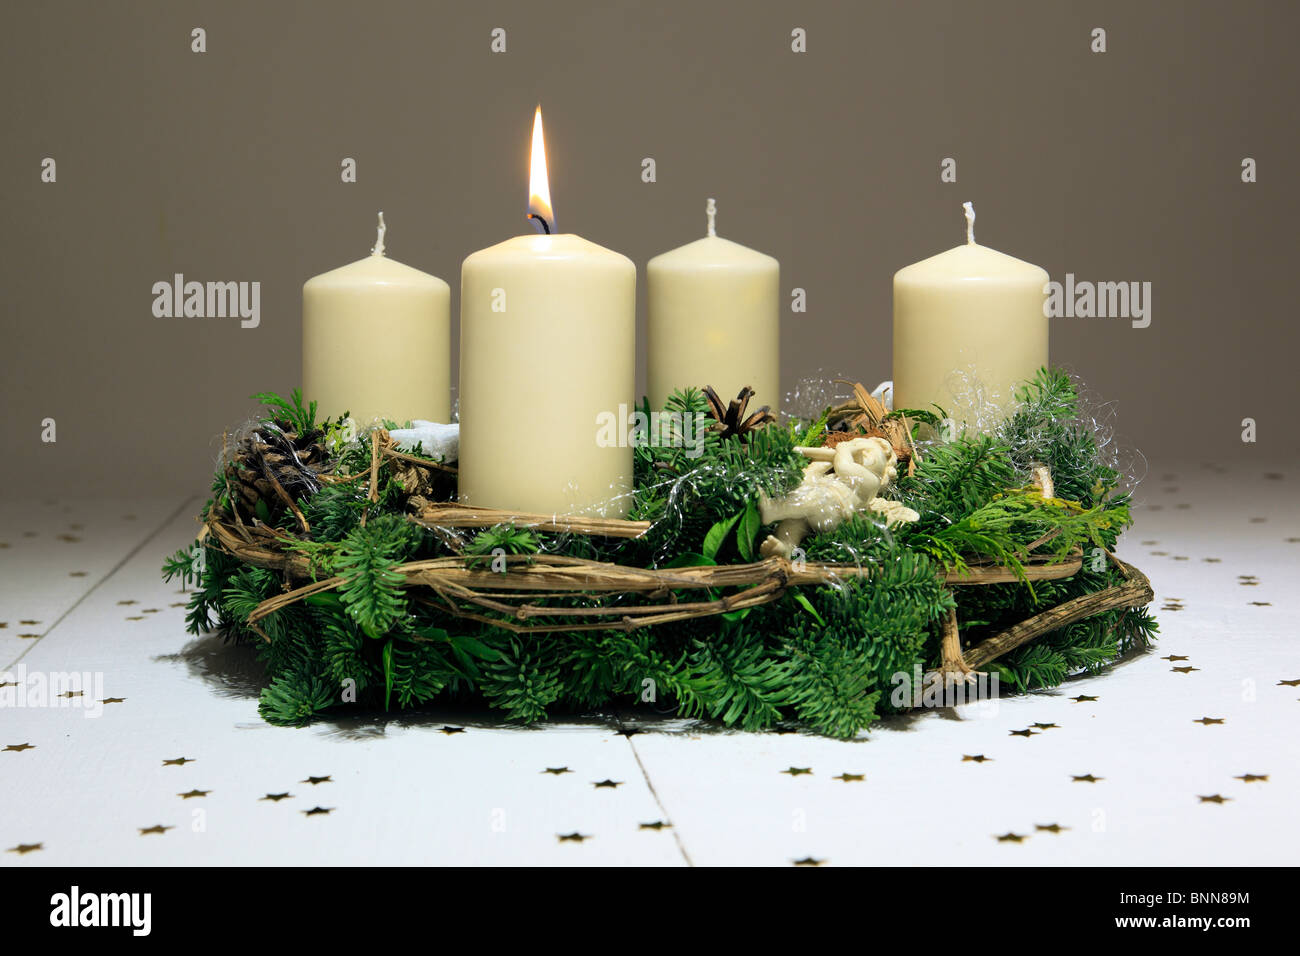 1 4 advent advent kranz adventszeit deko dekoration schmuck engel flamme flammen holz - Dekoration advent ...